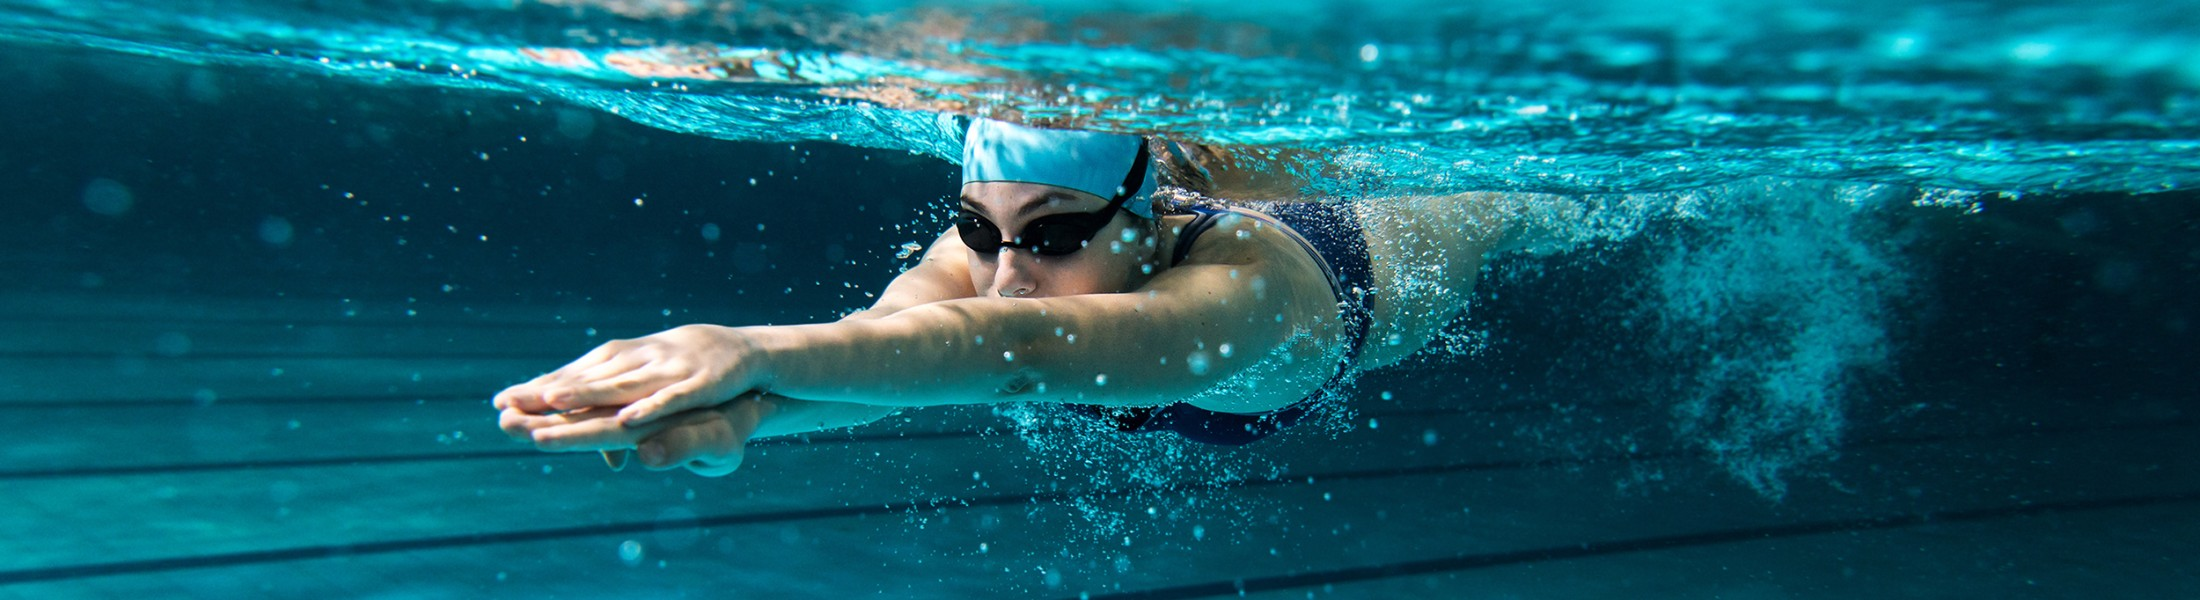 Woman diving underwater in a swimming pool